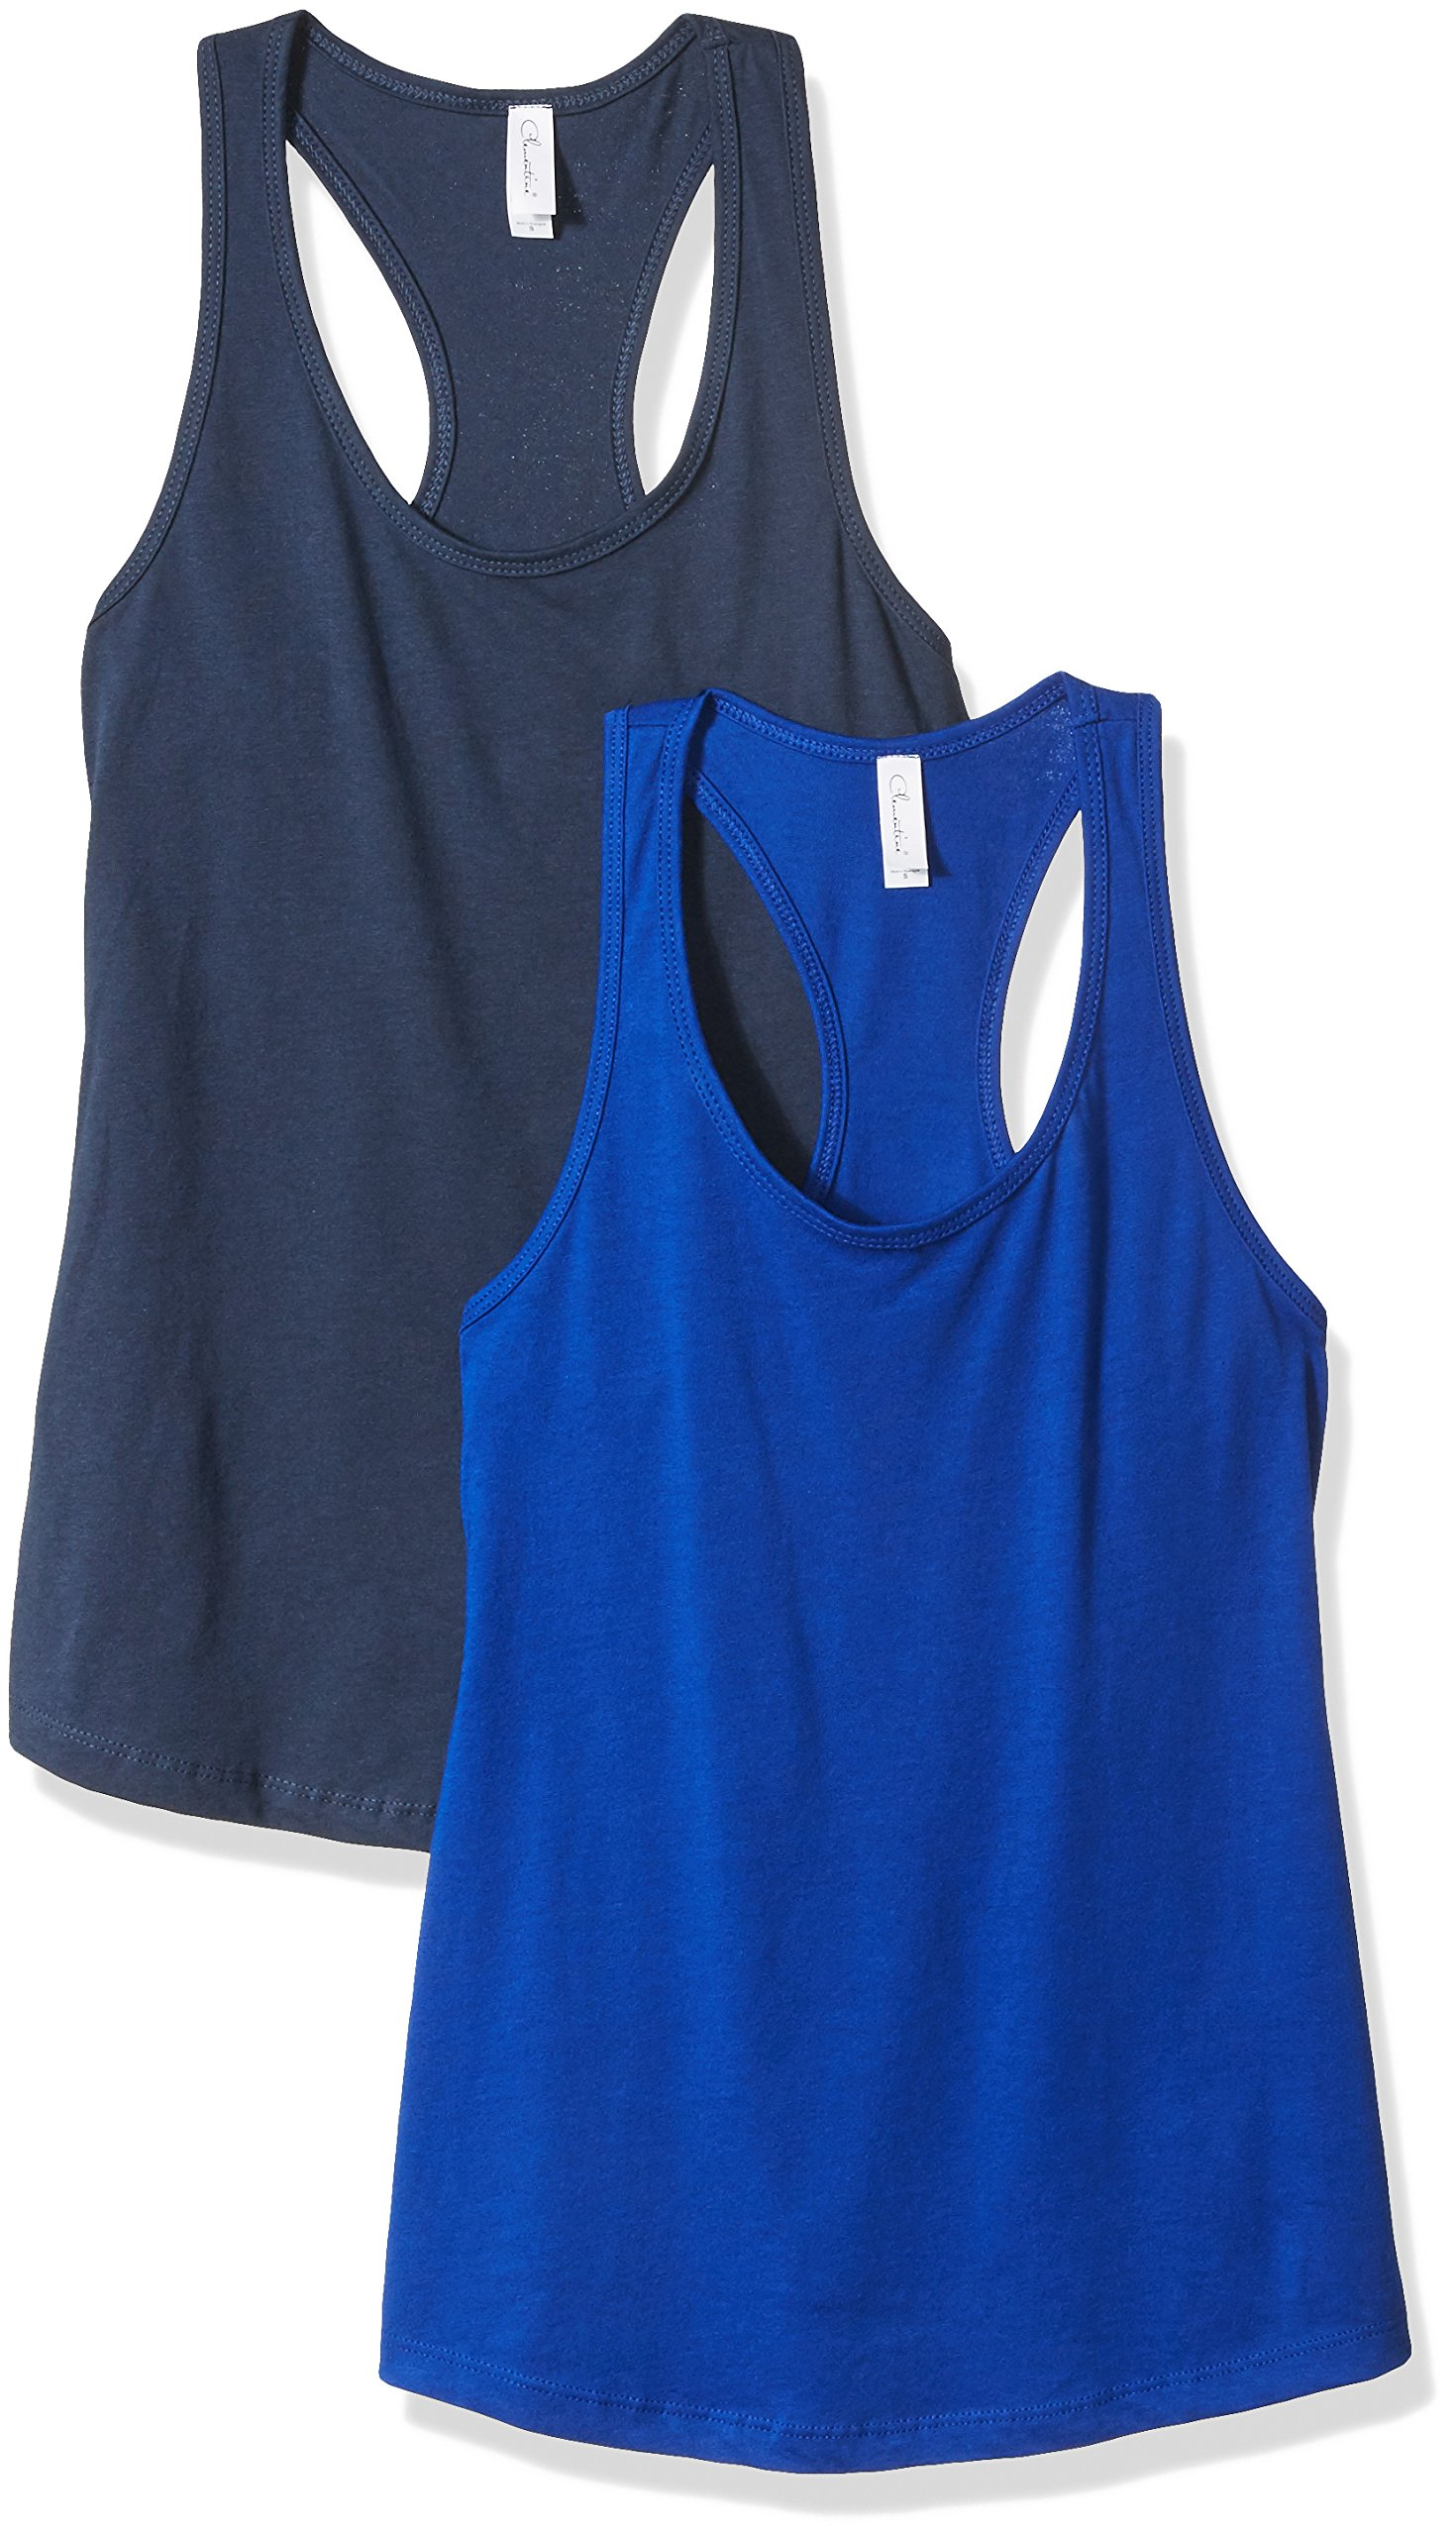 Clementine Apparel Women's Petite Plus Ideal Racerback Tank Tops (Pack of 2), IndigoRoyal, XL